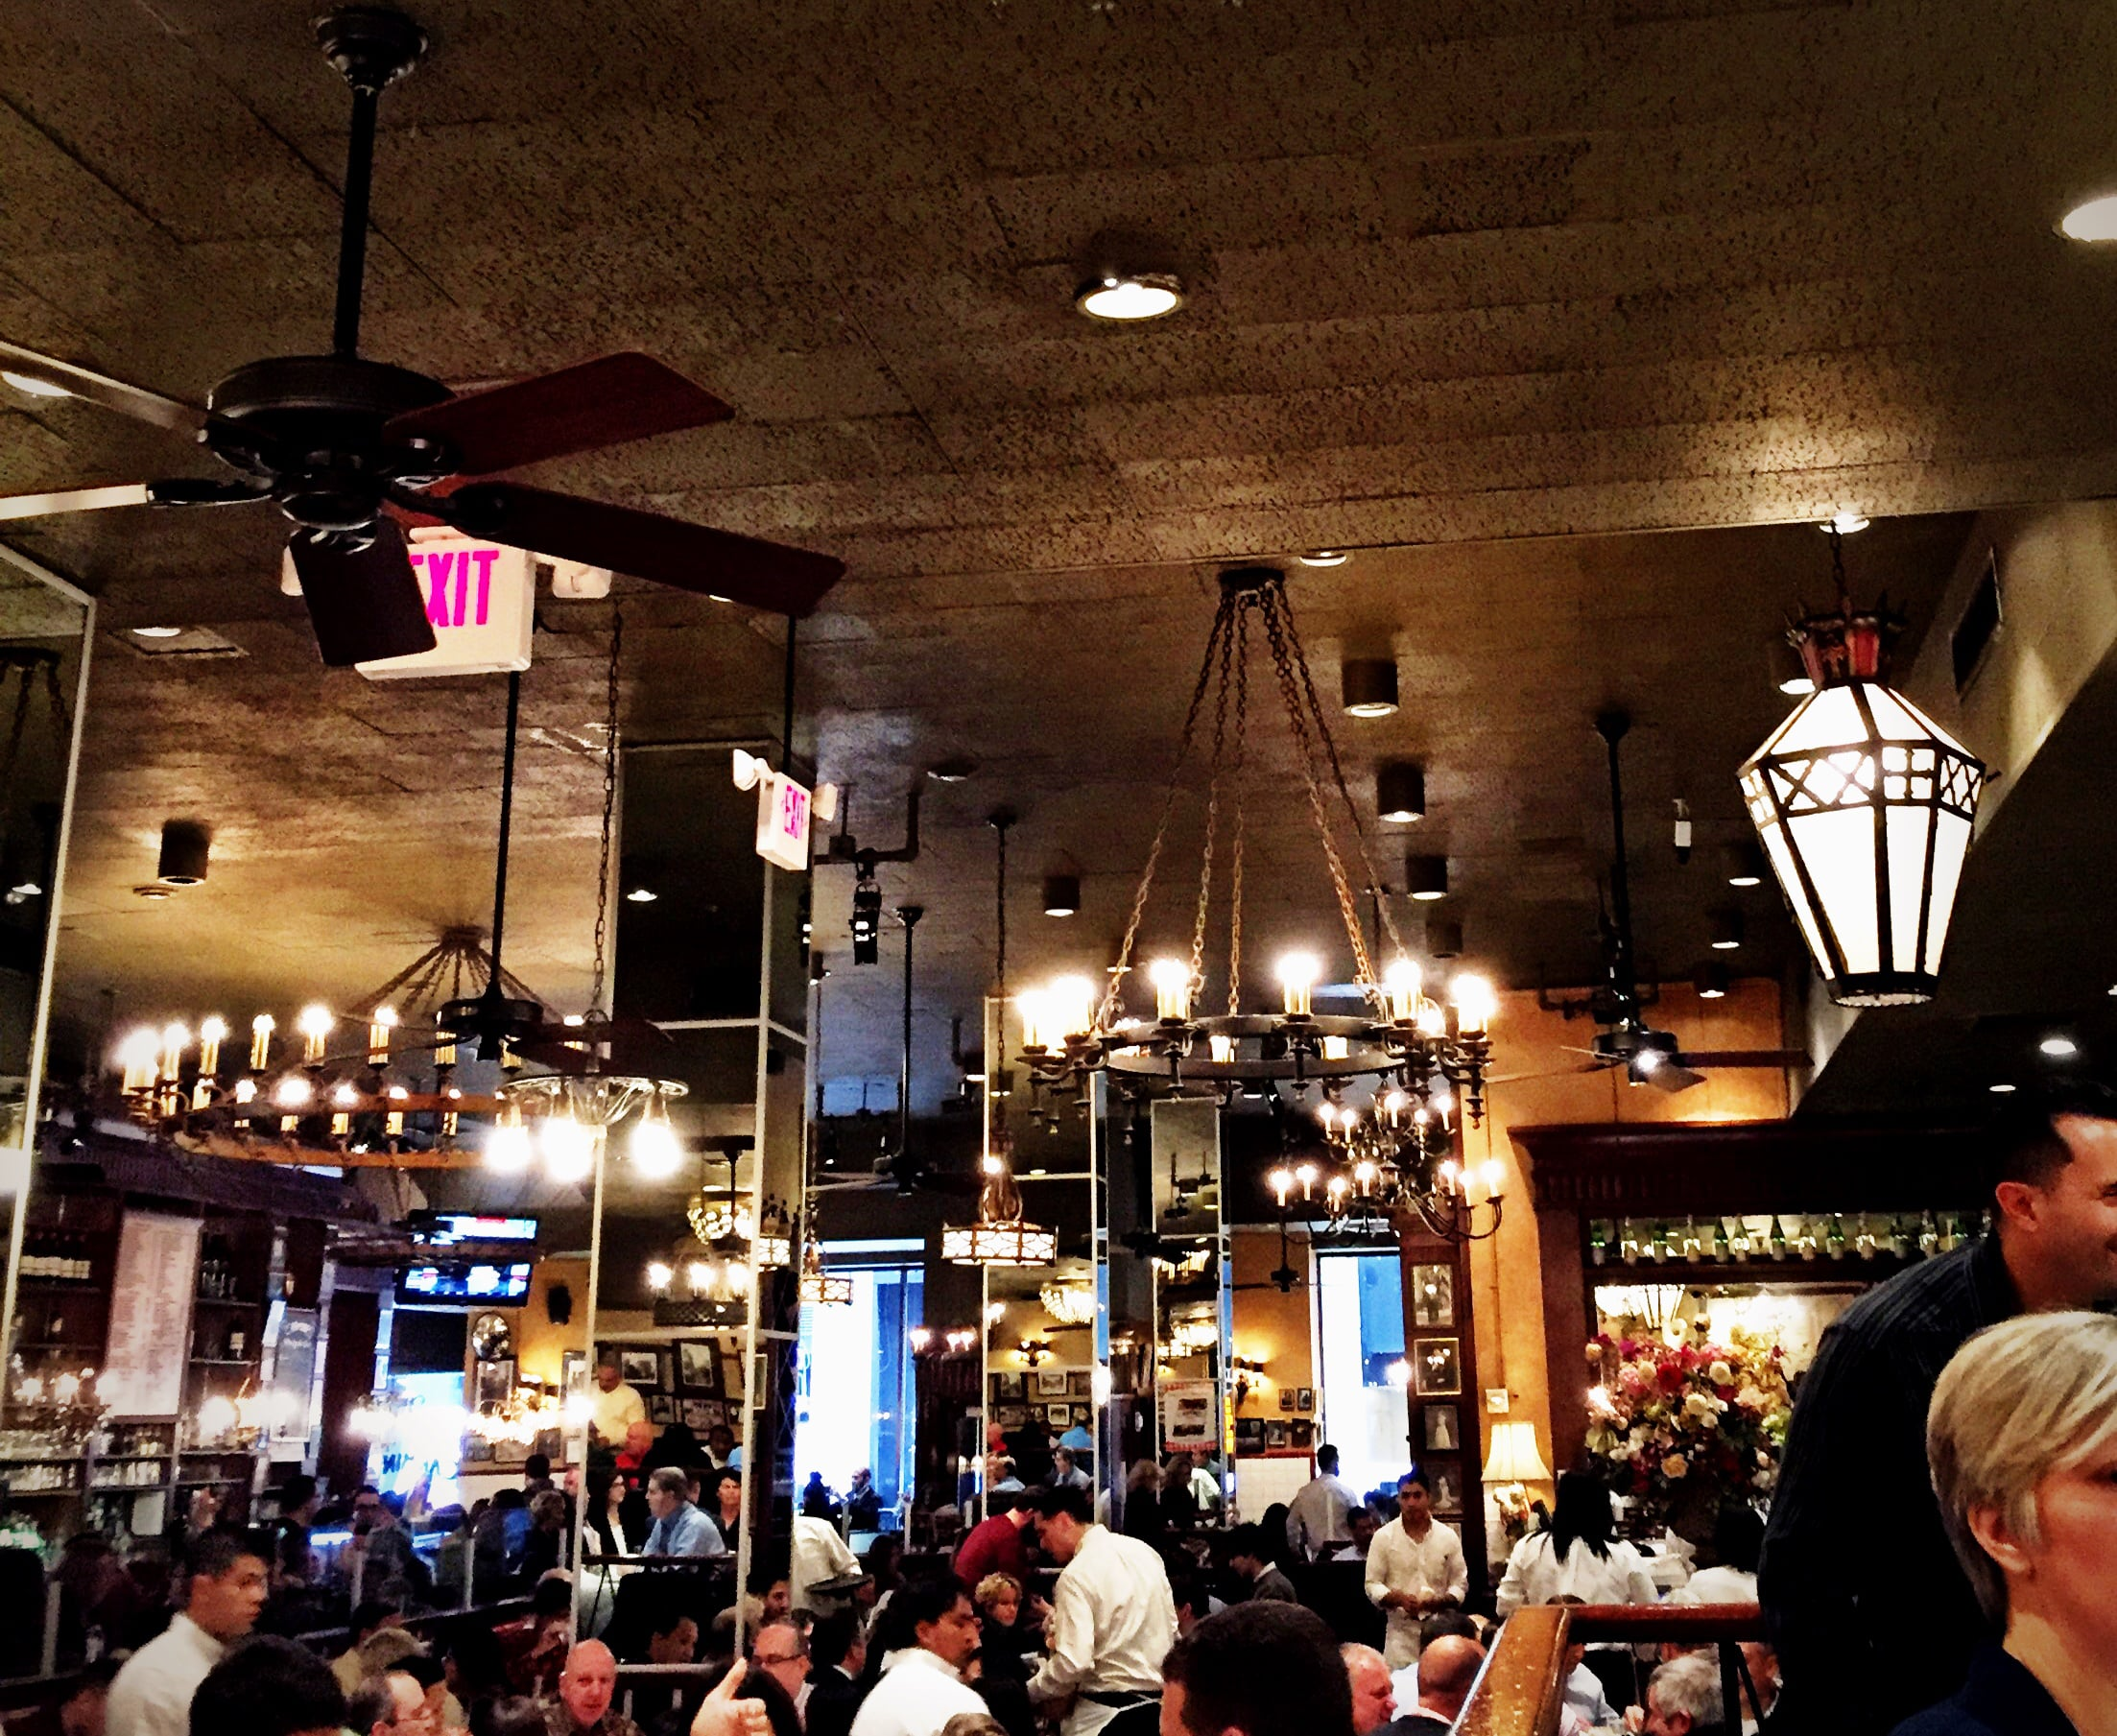 Lunch at  Carmine's  in NYC is always festive and delicious!